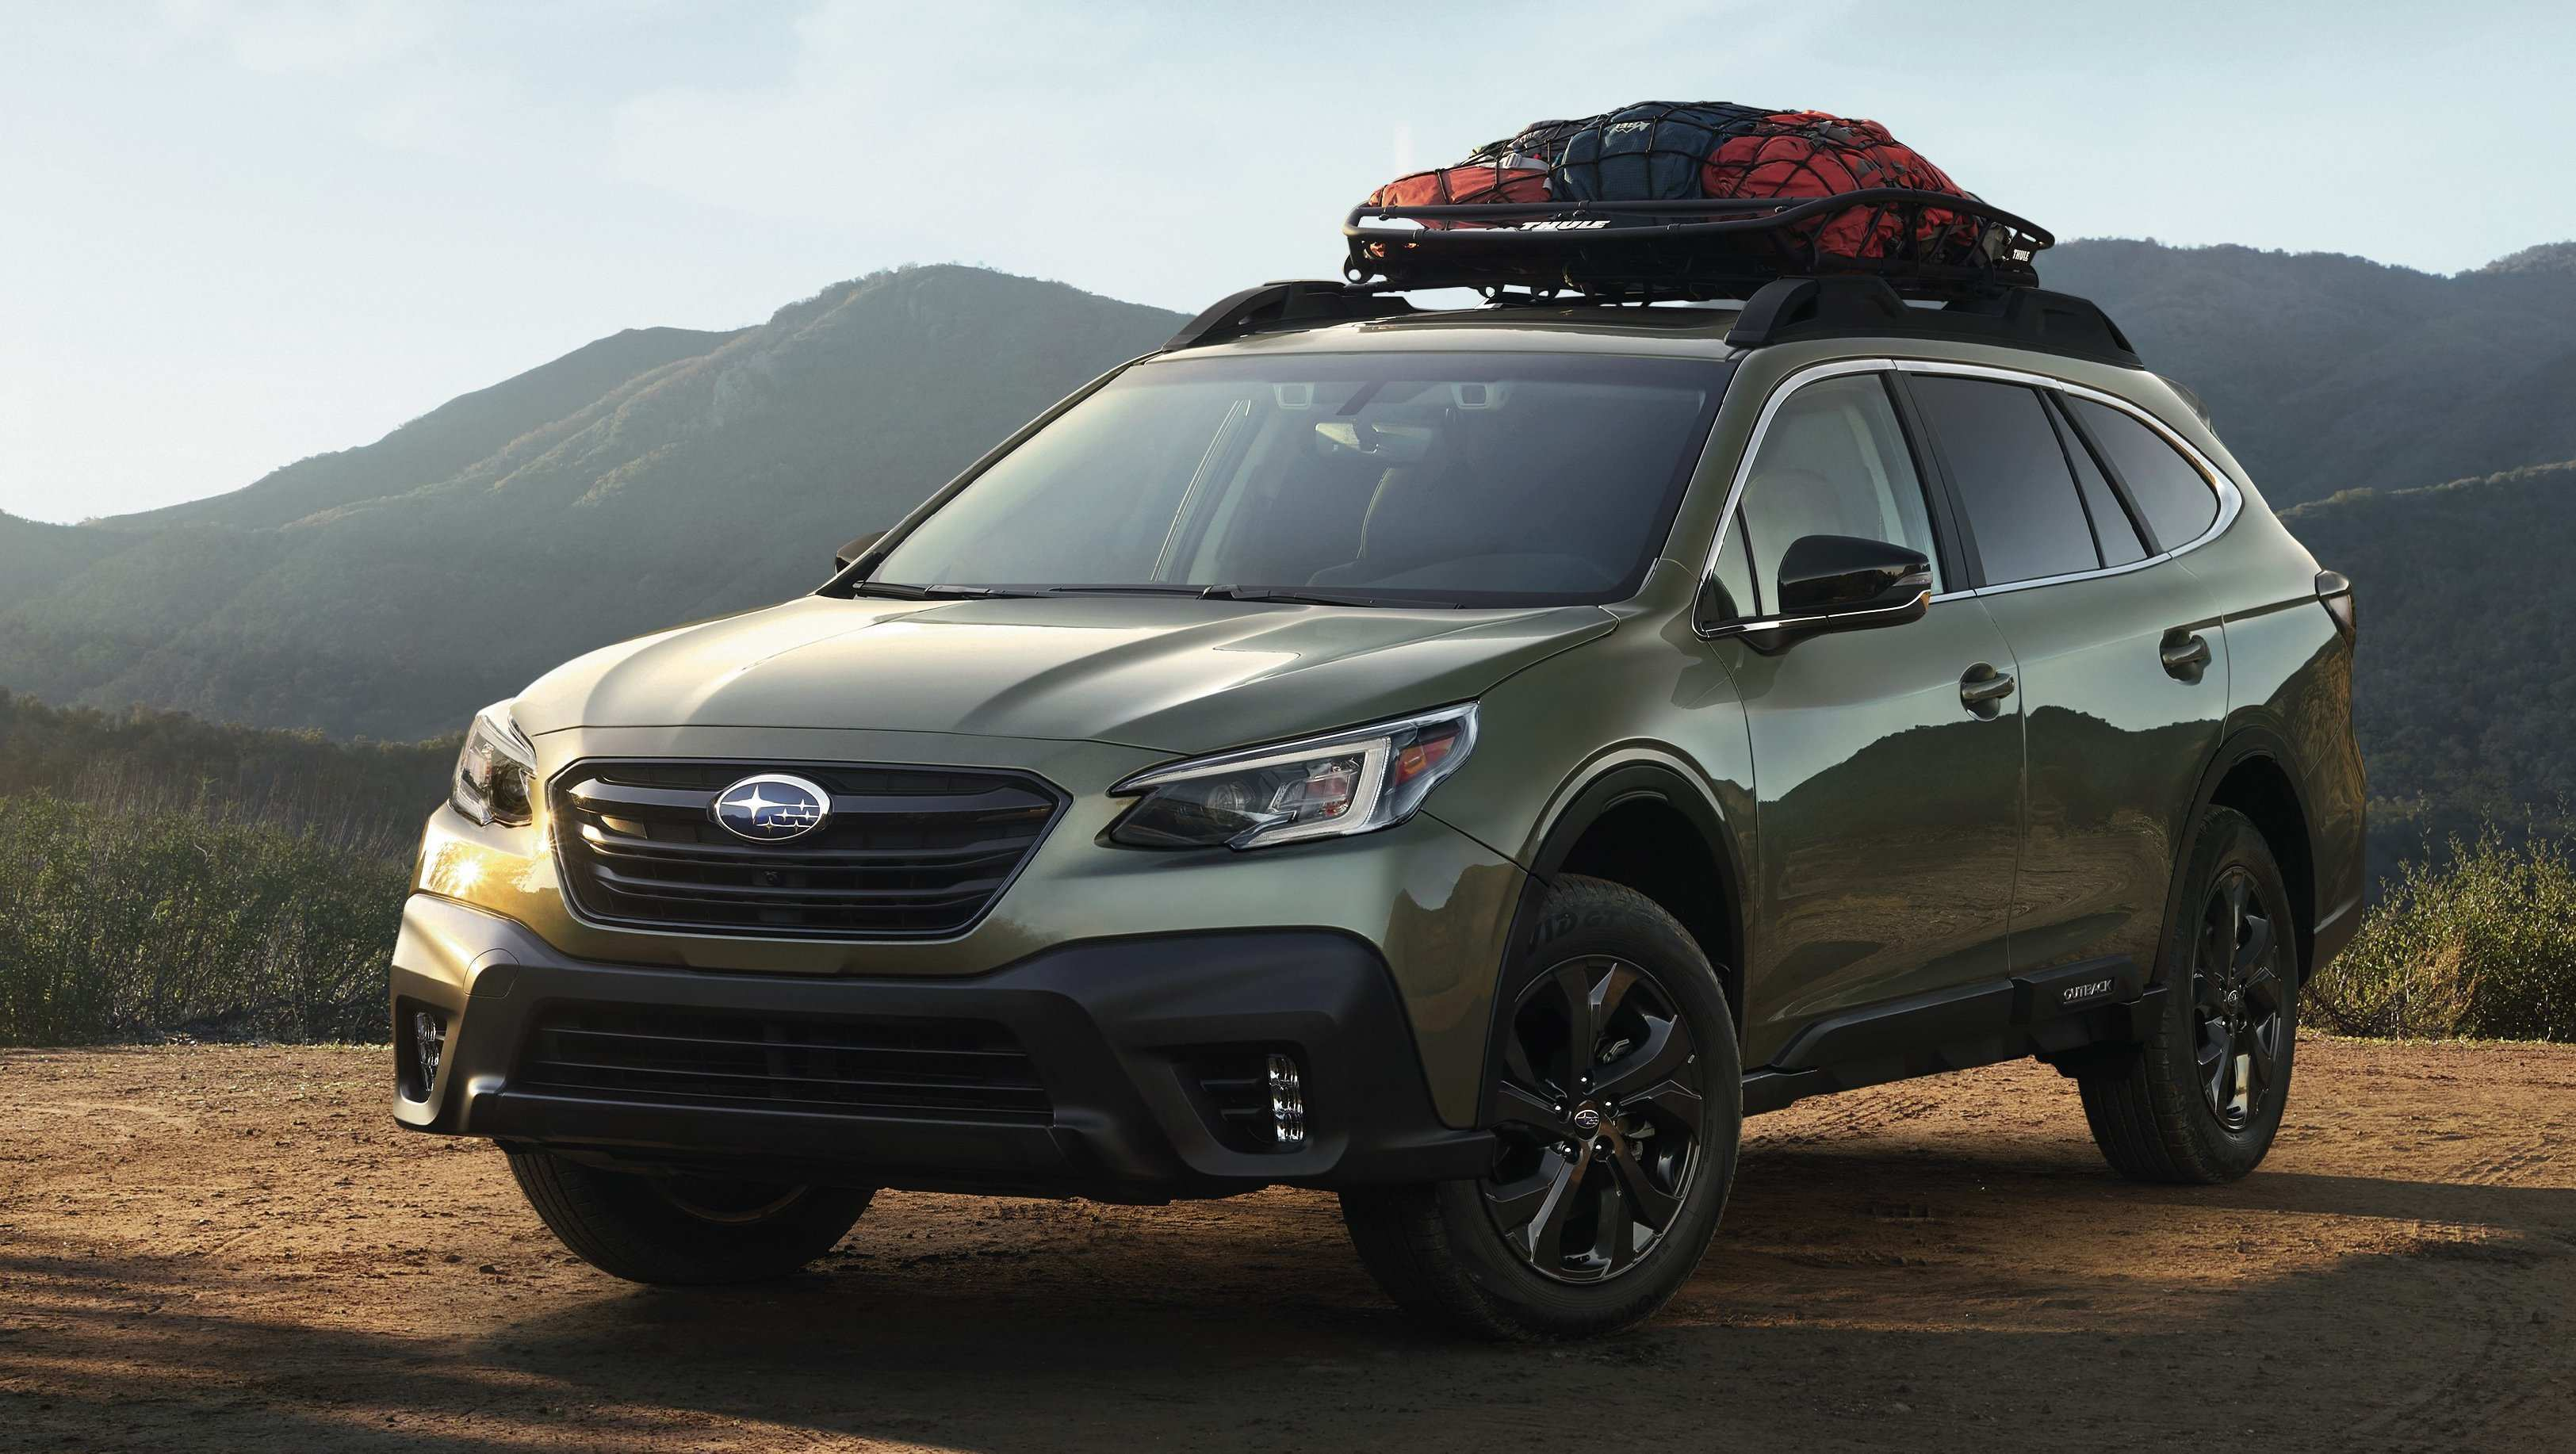 76 The Best 2020 Subaru Outback Photos Rumors